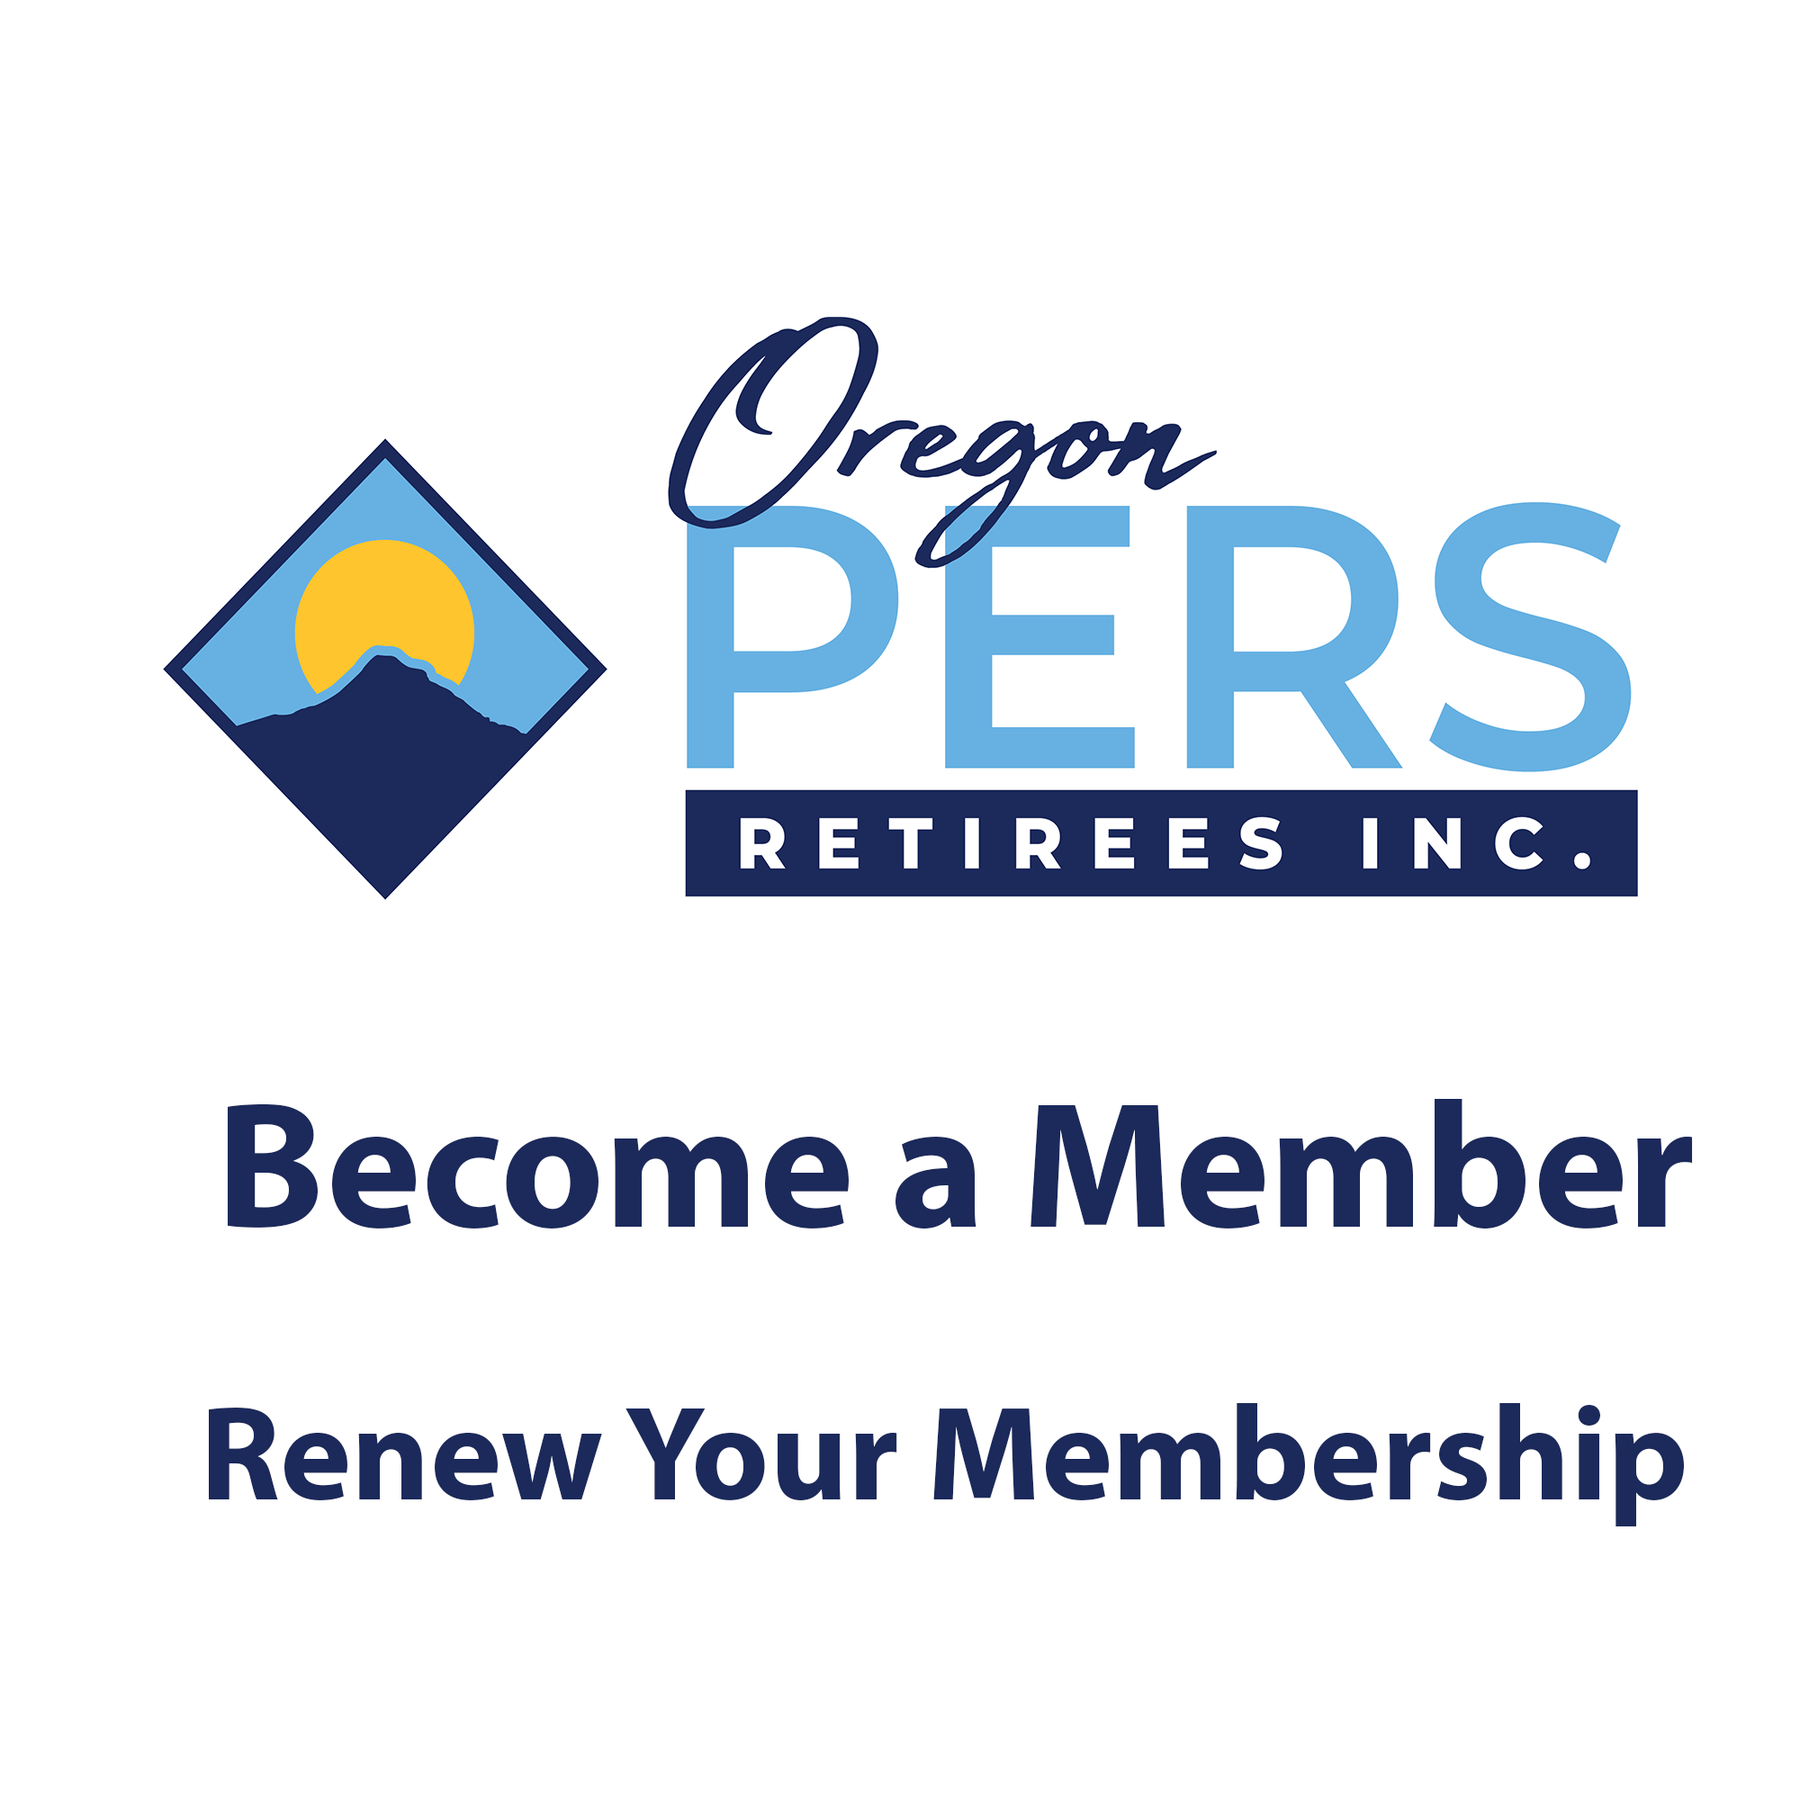 Oregon PERS Retirees, Inc.: Website Membership